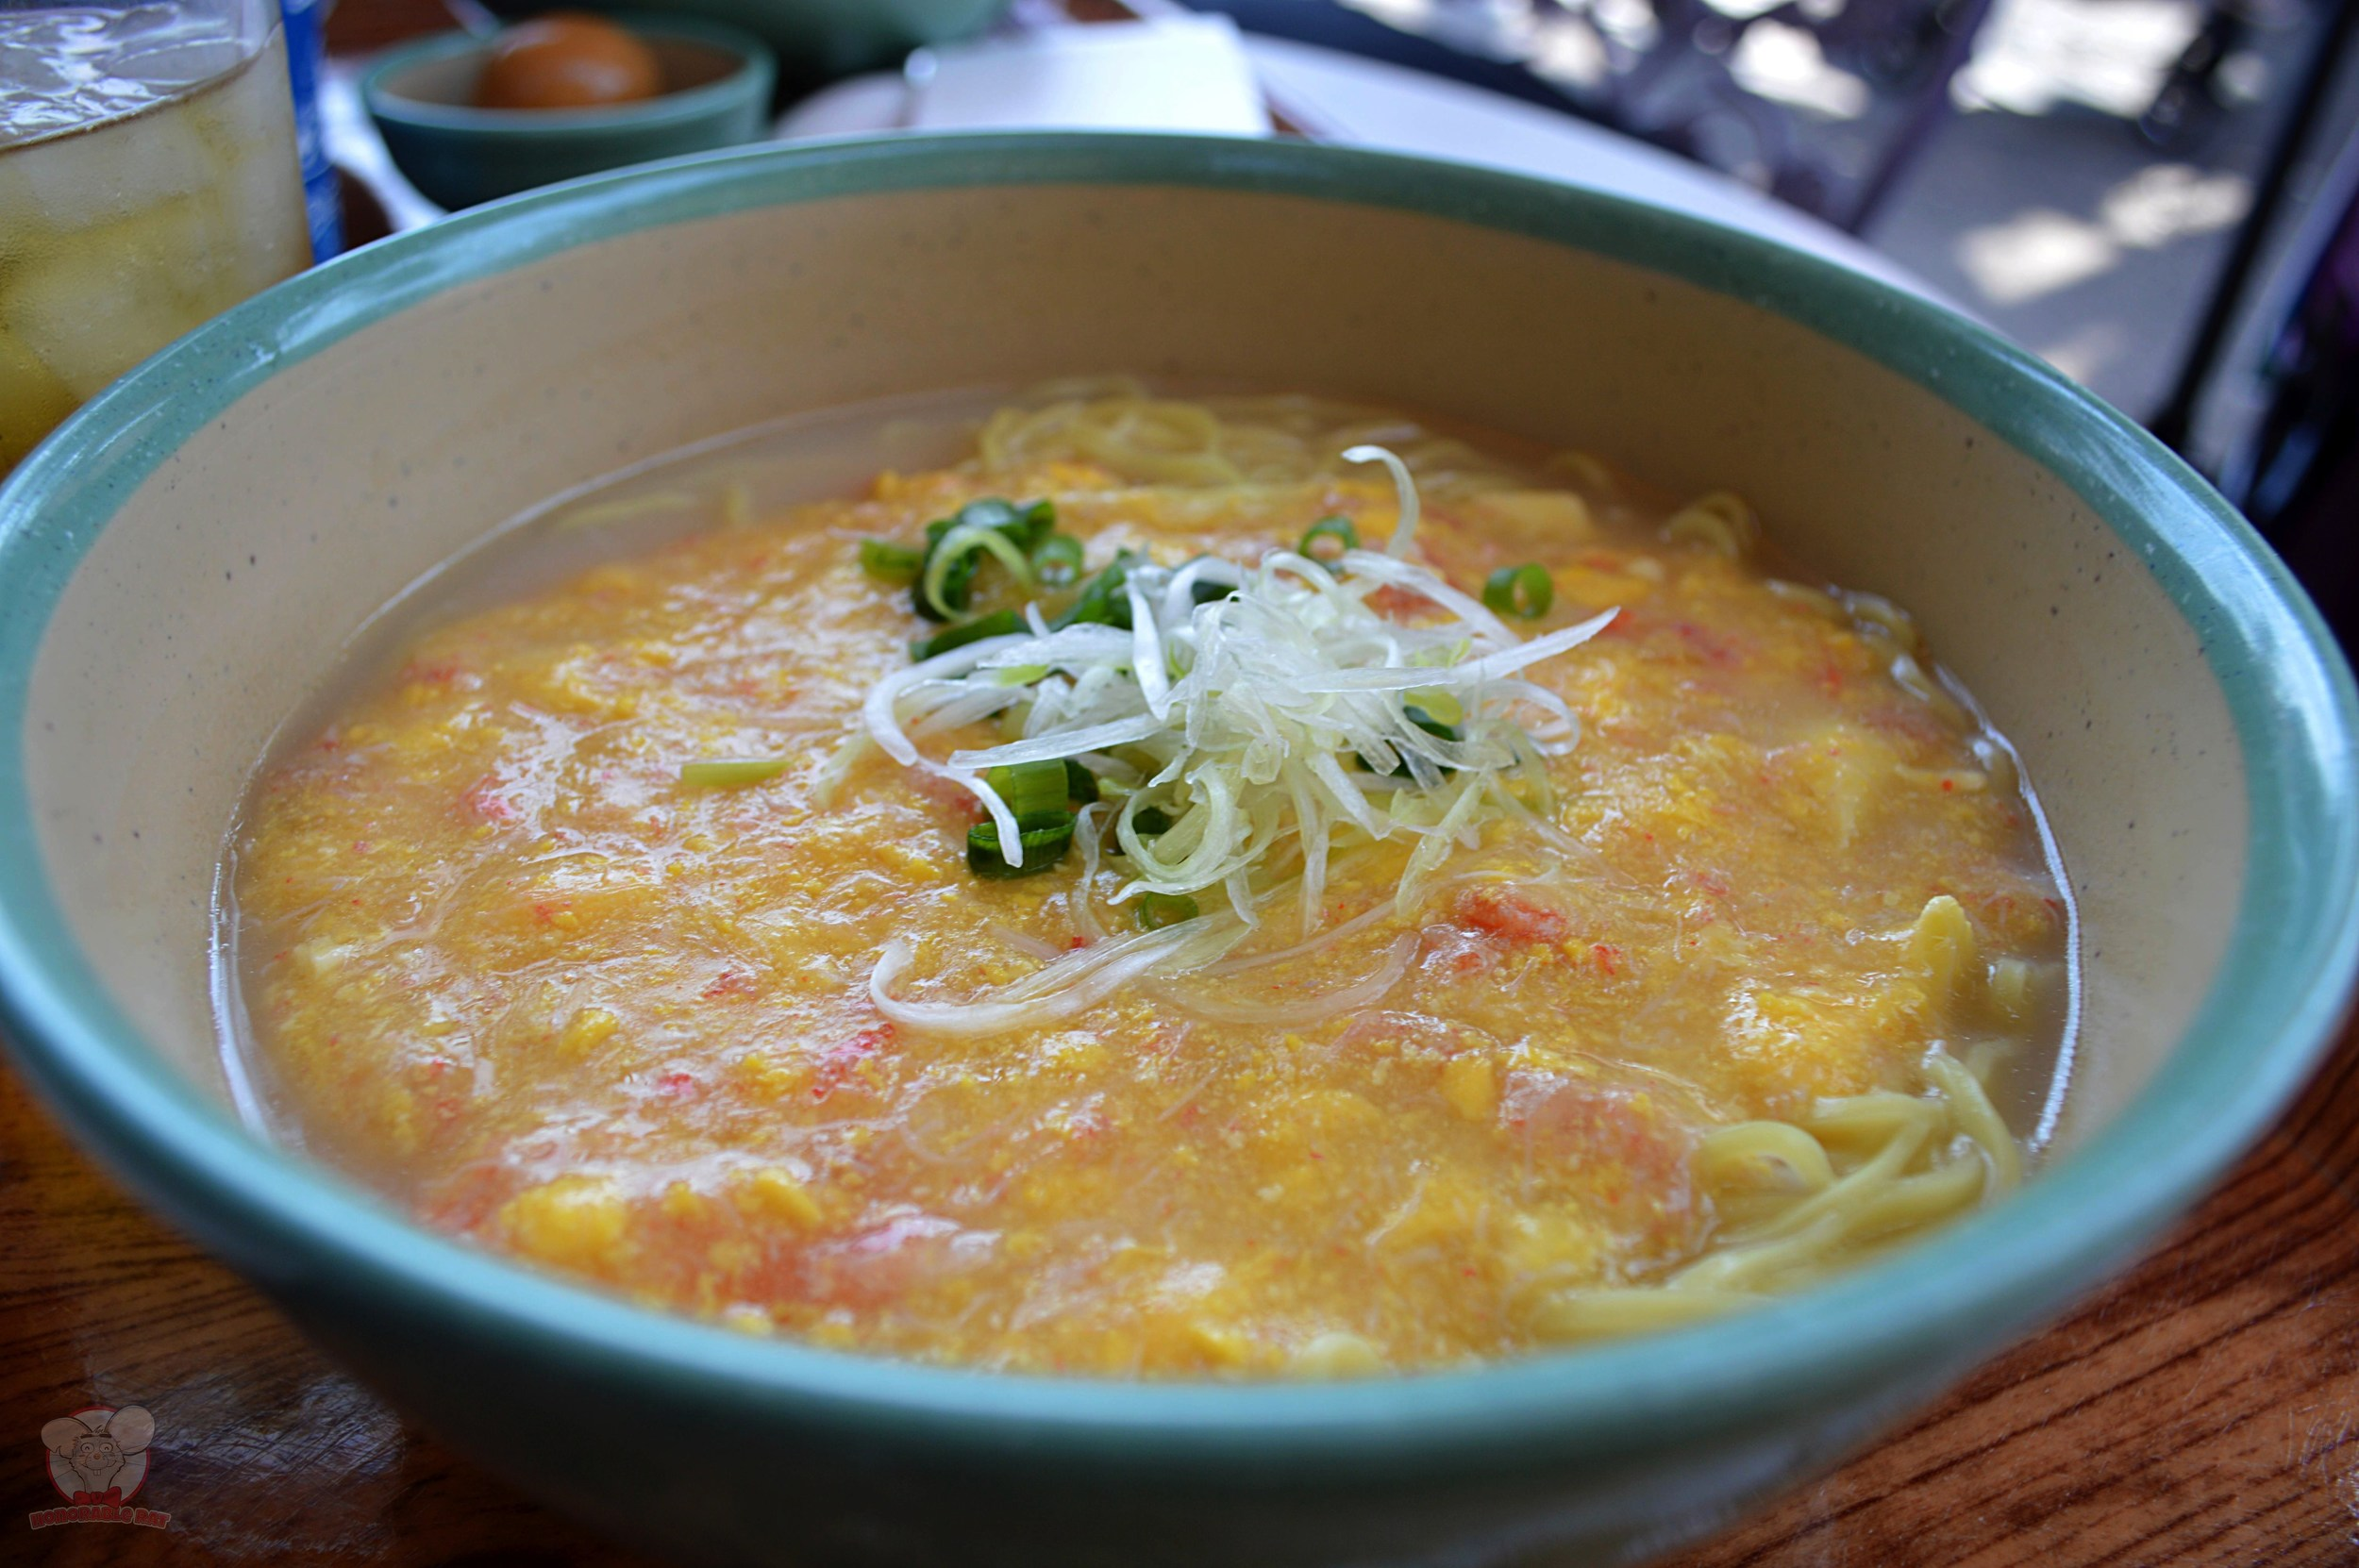 Noodles with Crab & Egg in Thickened Sauce